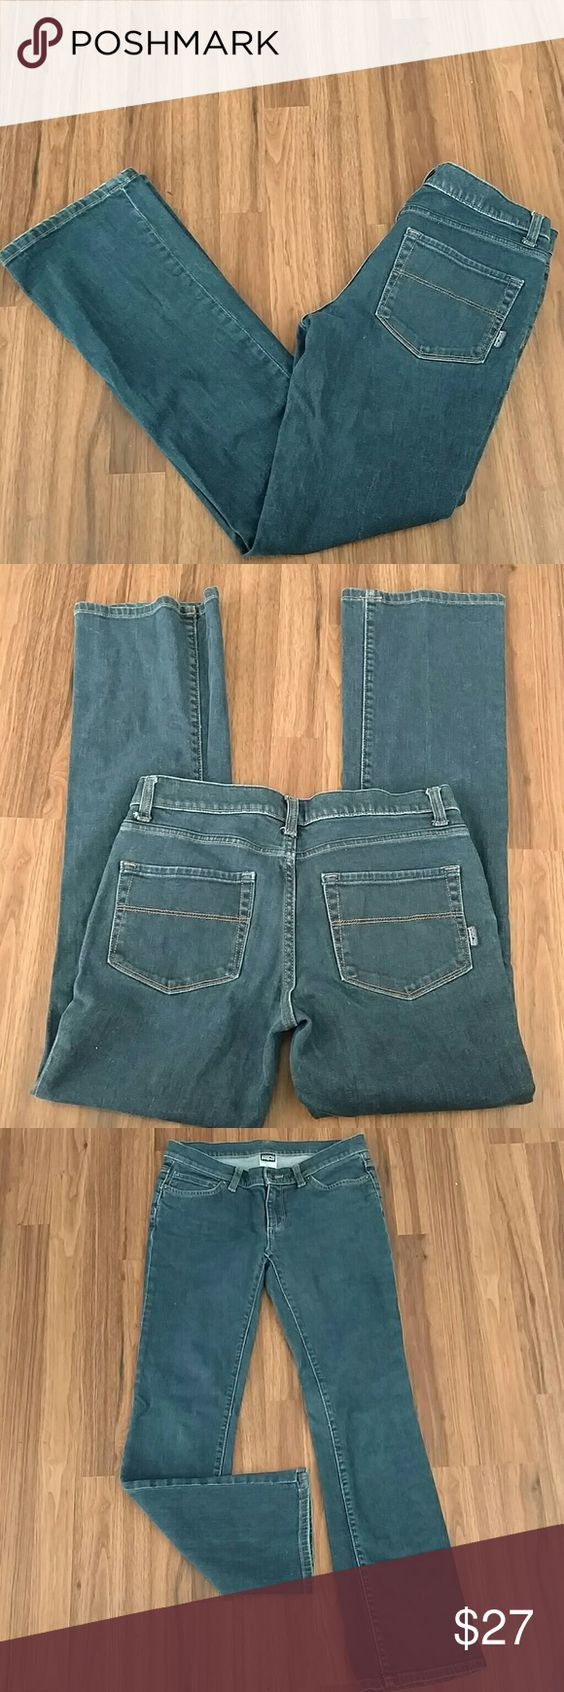 "Patagonia Organic Cotton Stretch Jeans Sz 28 Patagonia Organic Cotton Stretch Jeans Sz 28. Medium wash. Inseam is 31"". Preowned good condition. Patagonia Jeans"